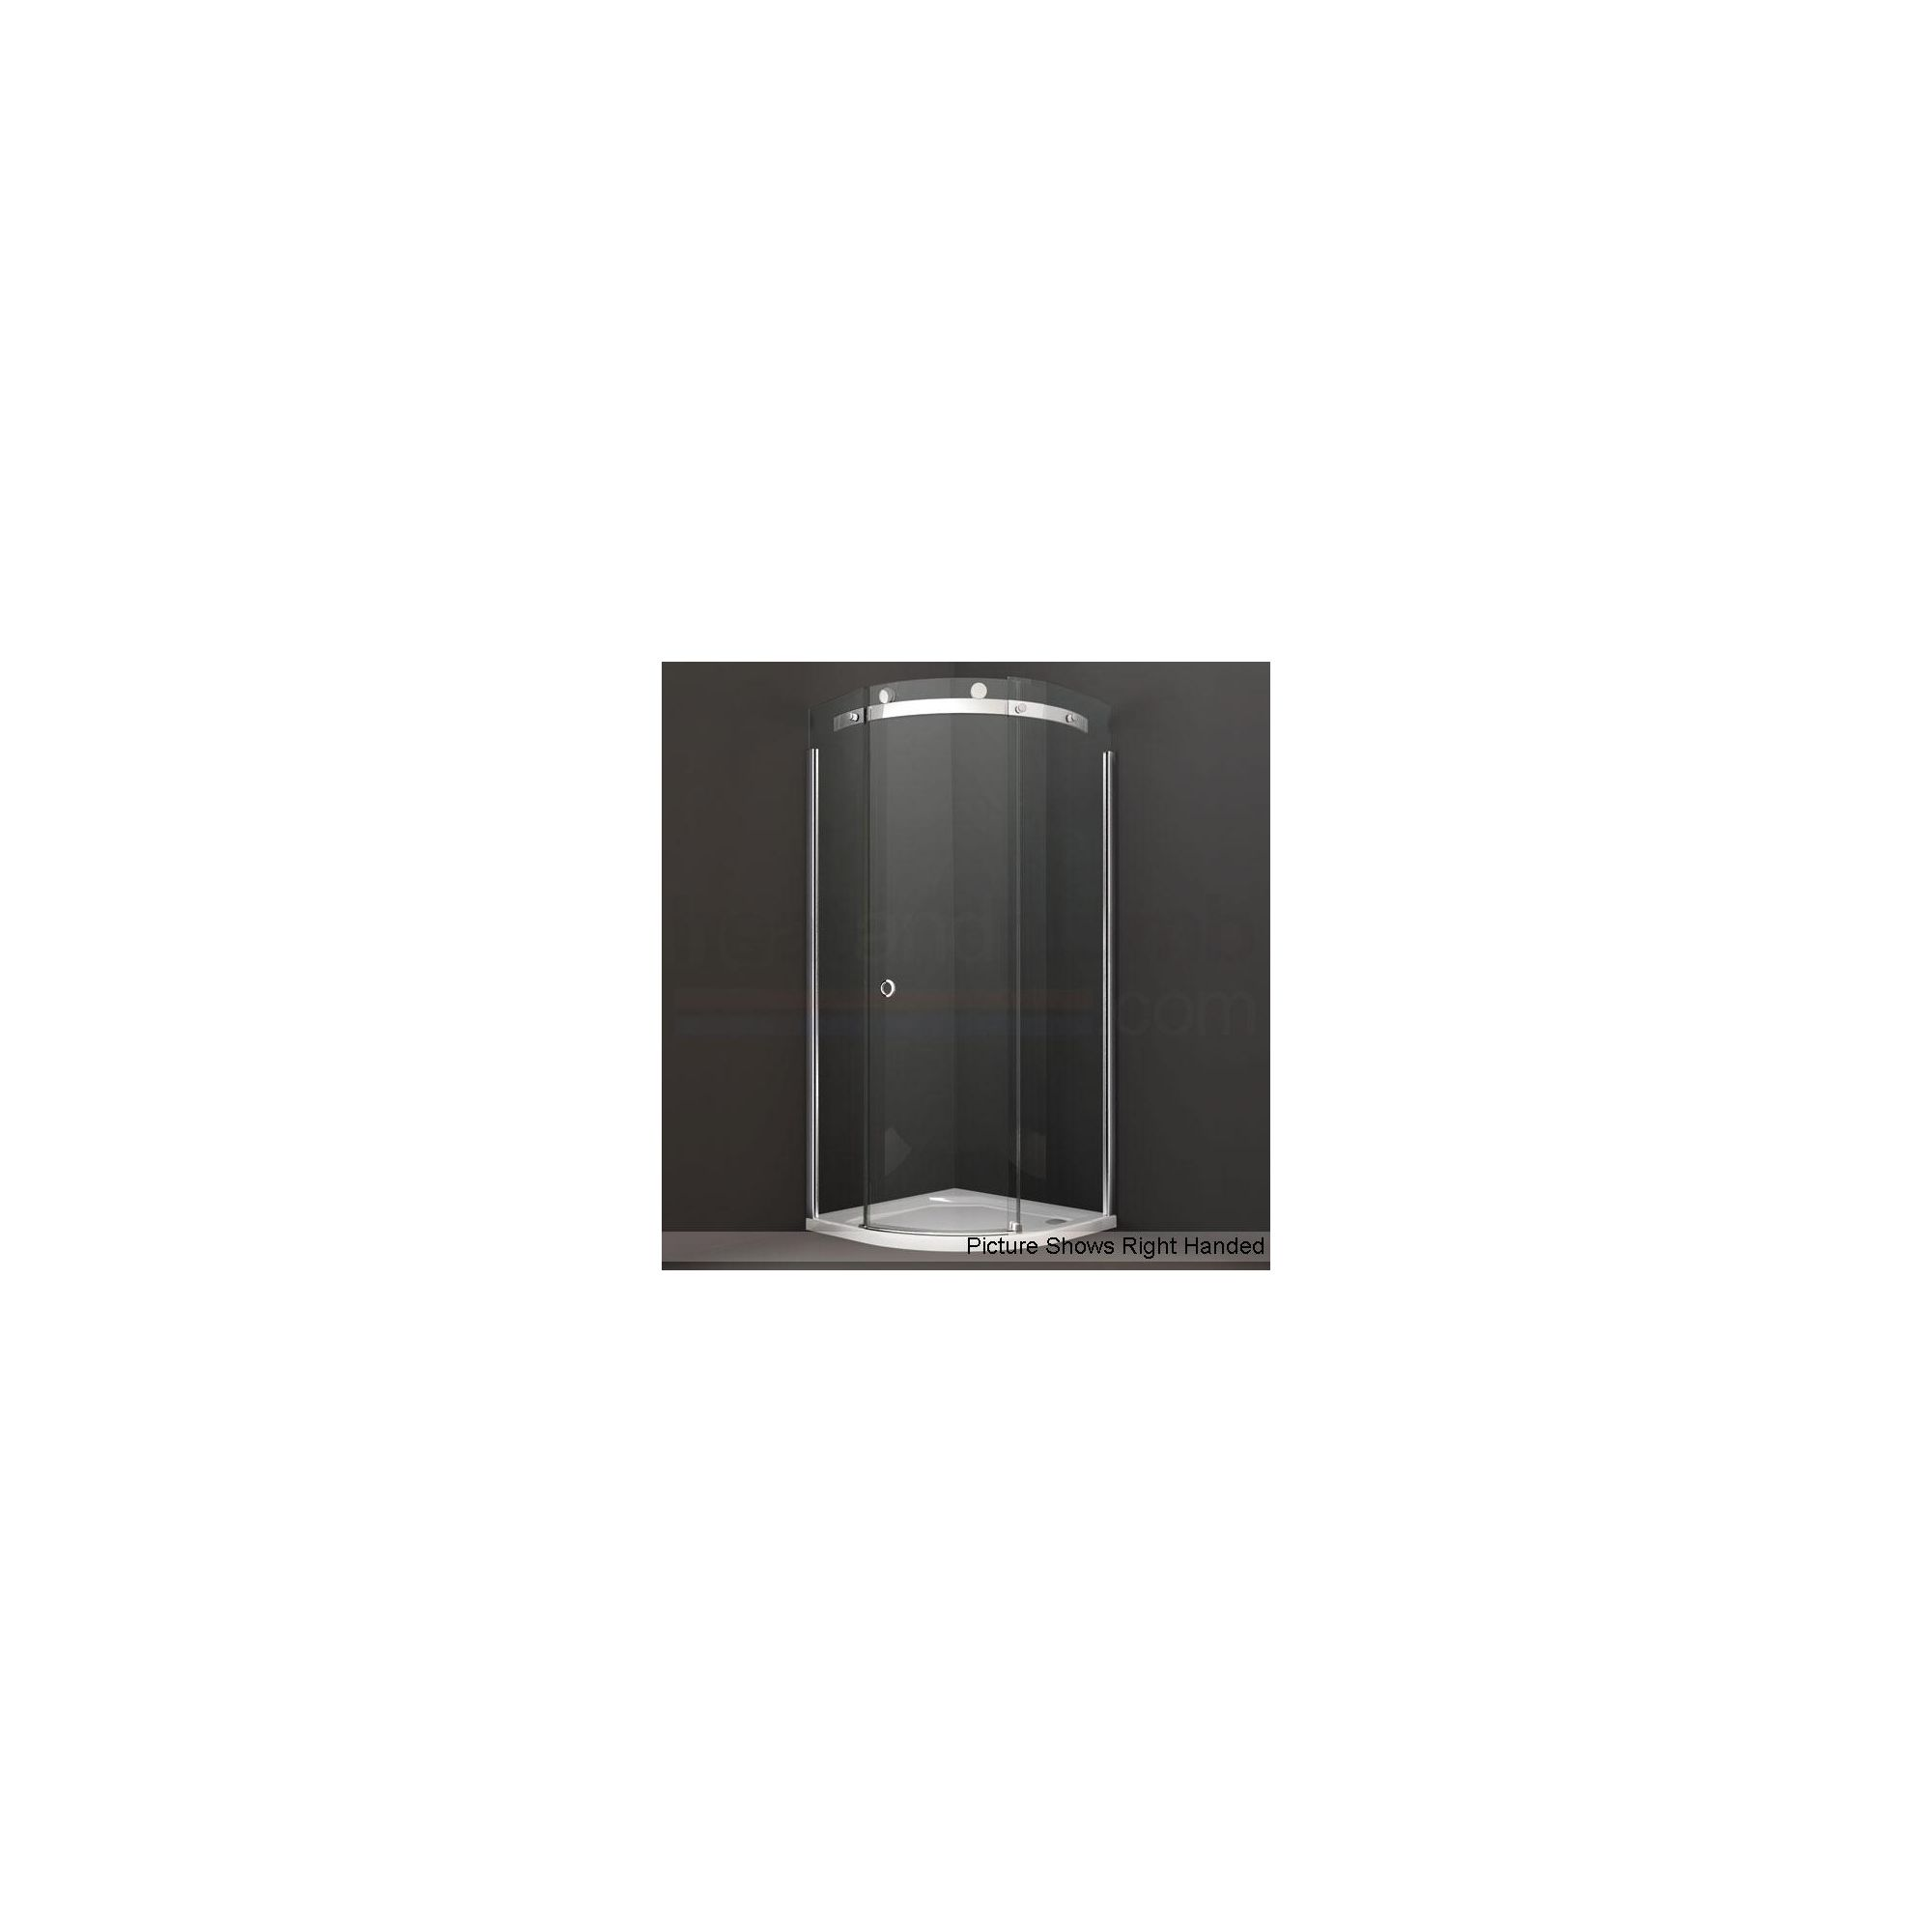 Merlyn Series 10 Quadrant Sliding Door Shower Enclosure, 900mm, Low Profile Tray, 10mm Glass at Tesco Direct